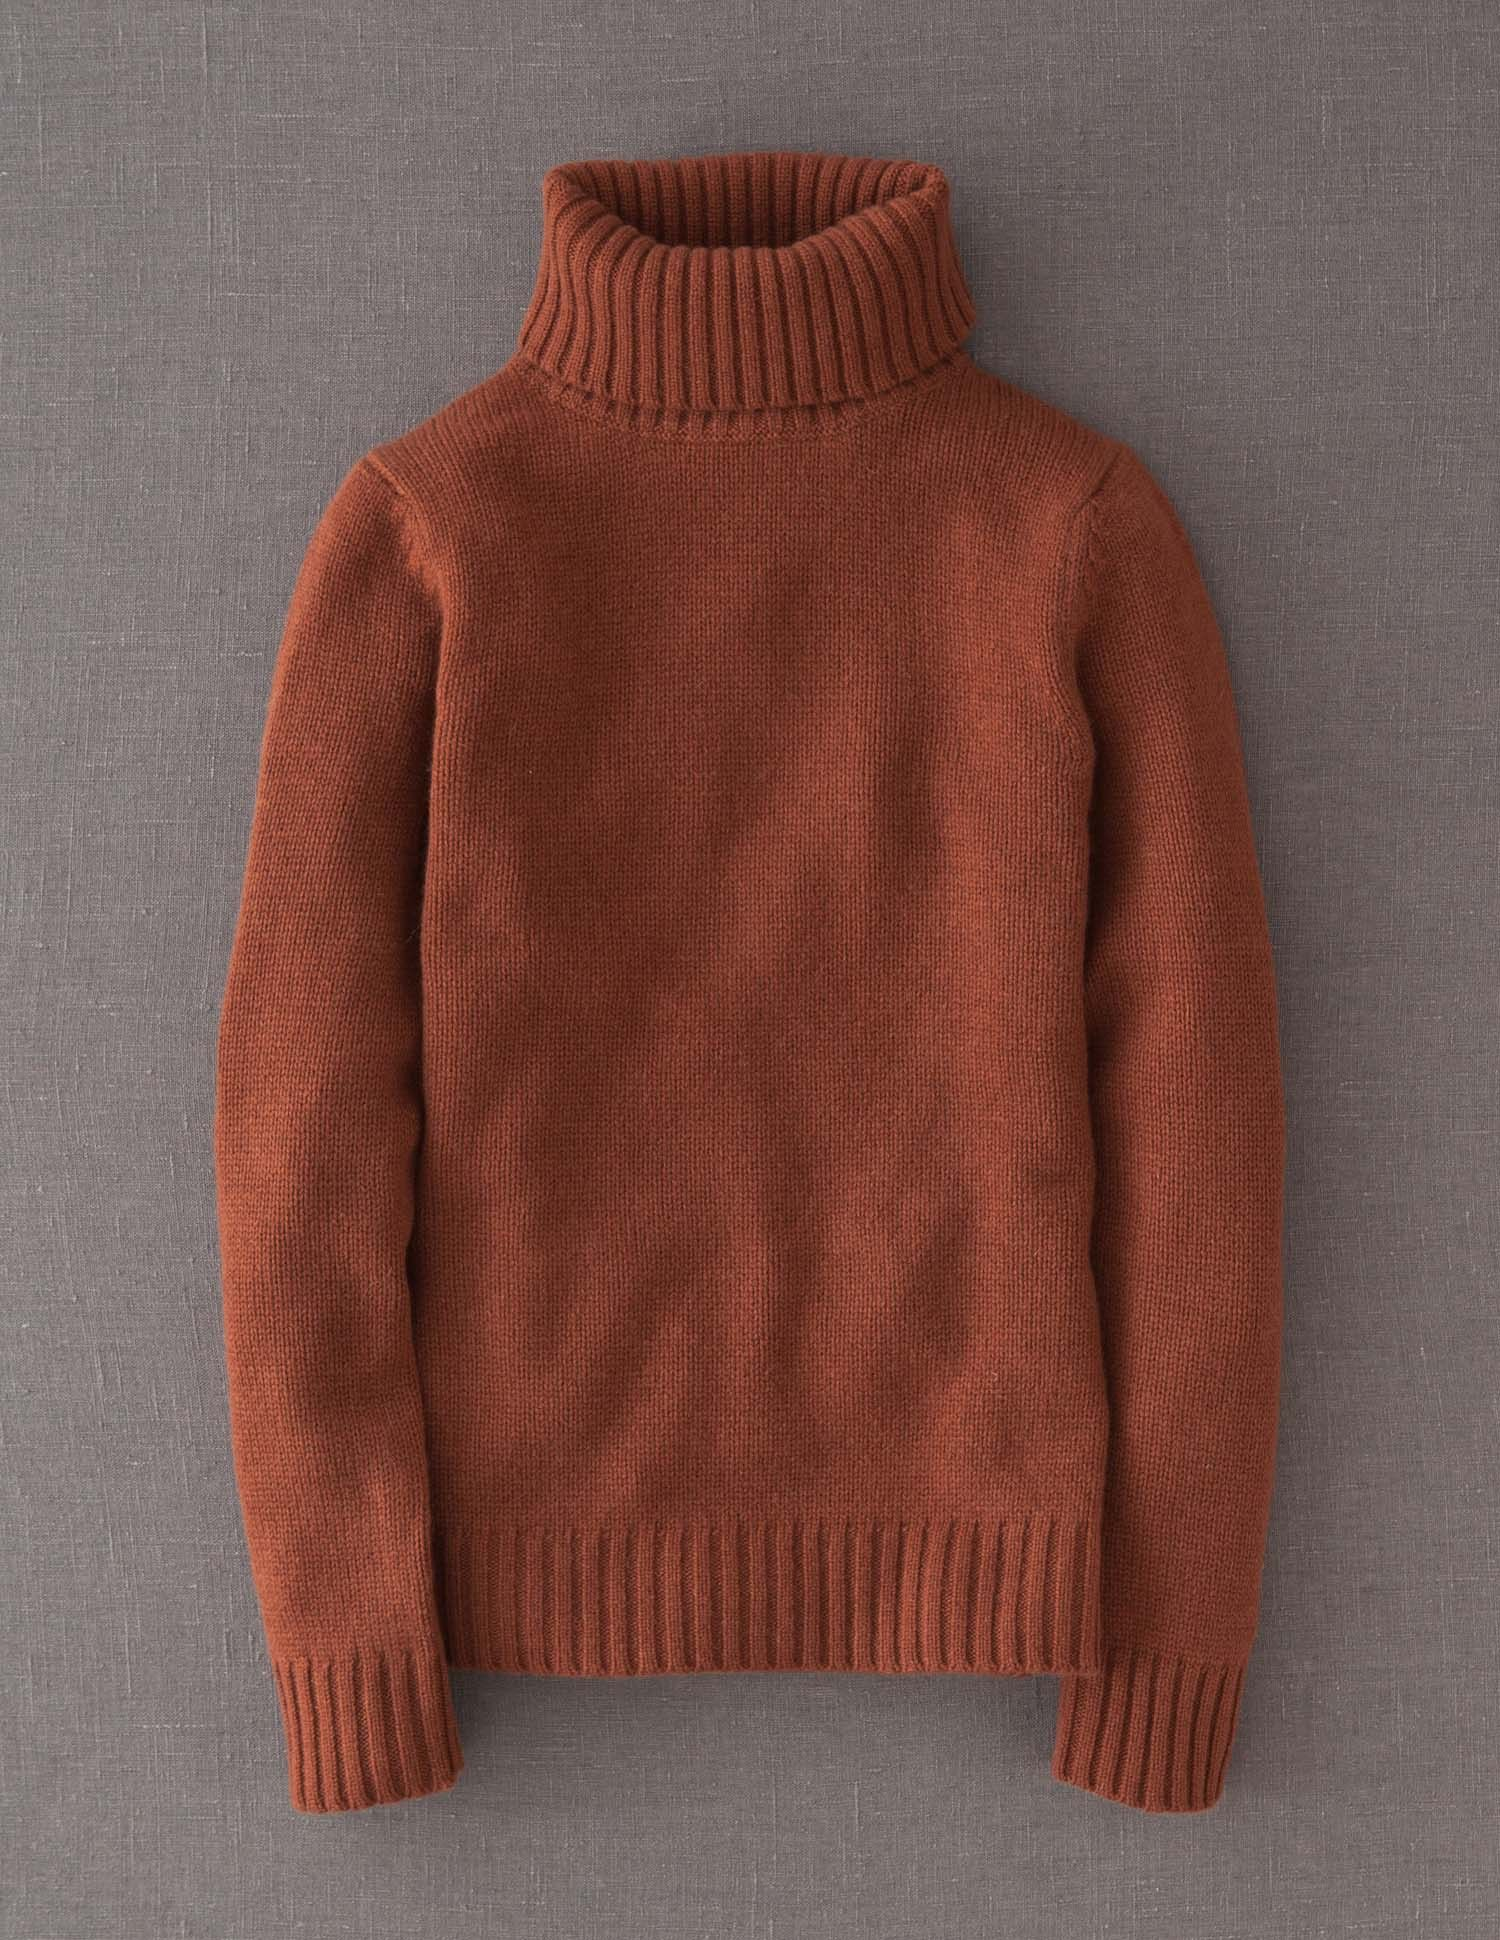 #ImDreamingOf when cold days call for a chunky knit. Cashmere? Yes please     @Radley London